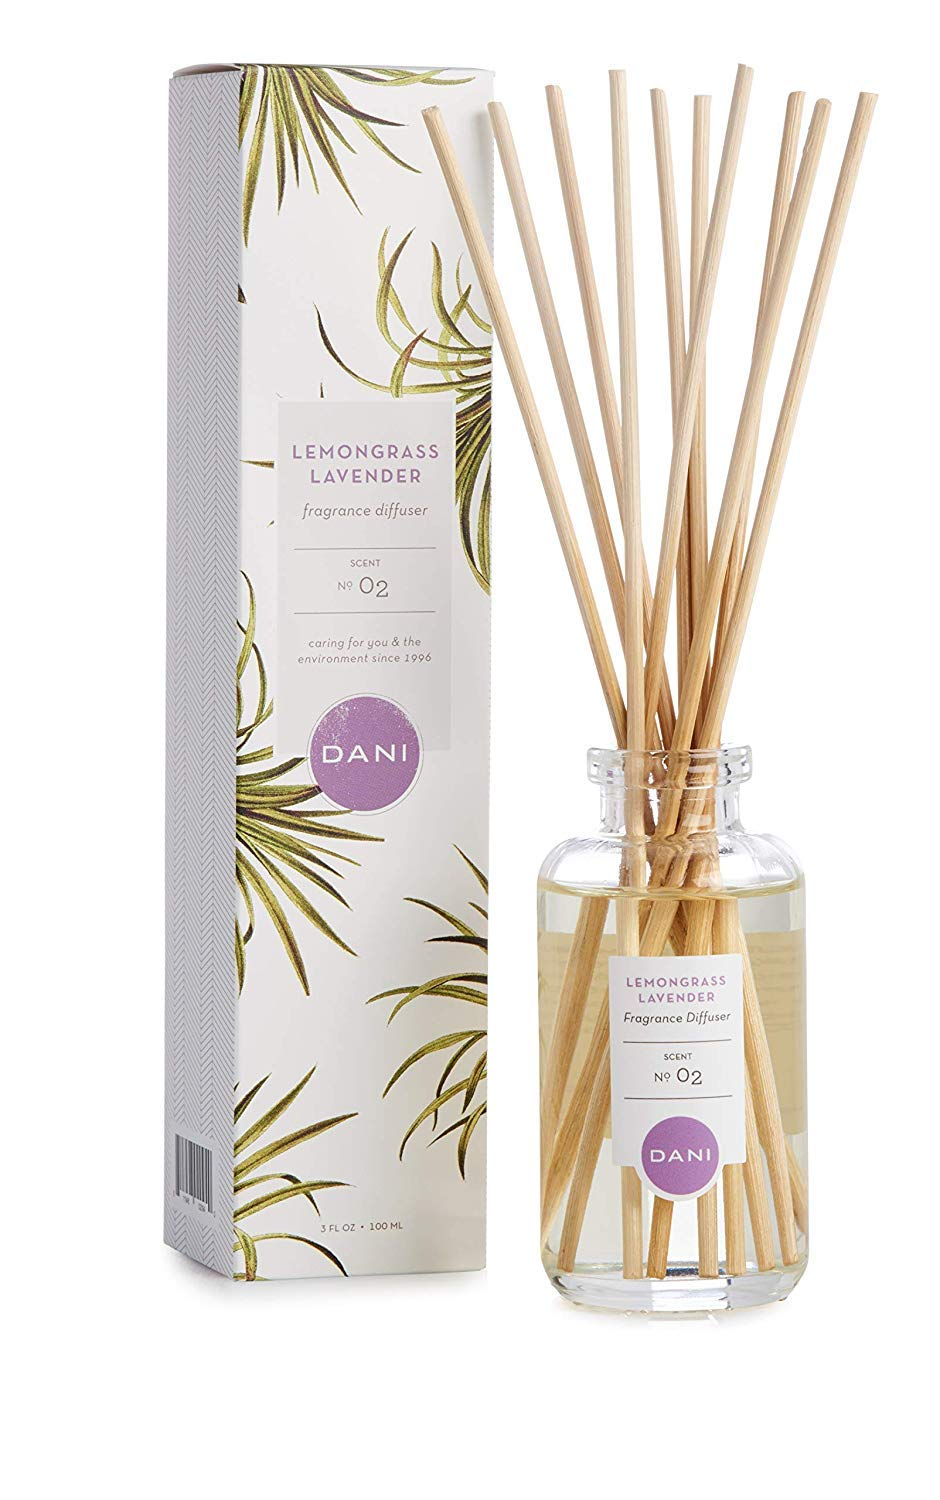 Natural Reed Diffuser Set by DANI Naturals - Calming Lemongrass Lavender Scented - Aromatherapy Essentials Oils - Alcohol Free - 10 Diffuser Sticks - 3.5 Ounce Glass Bottle by DANI